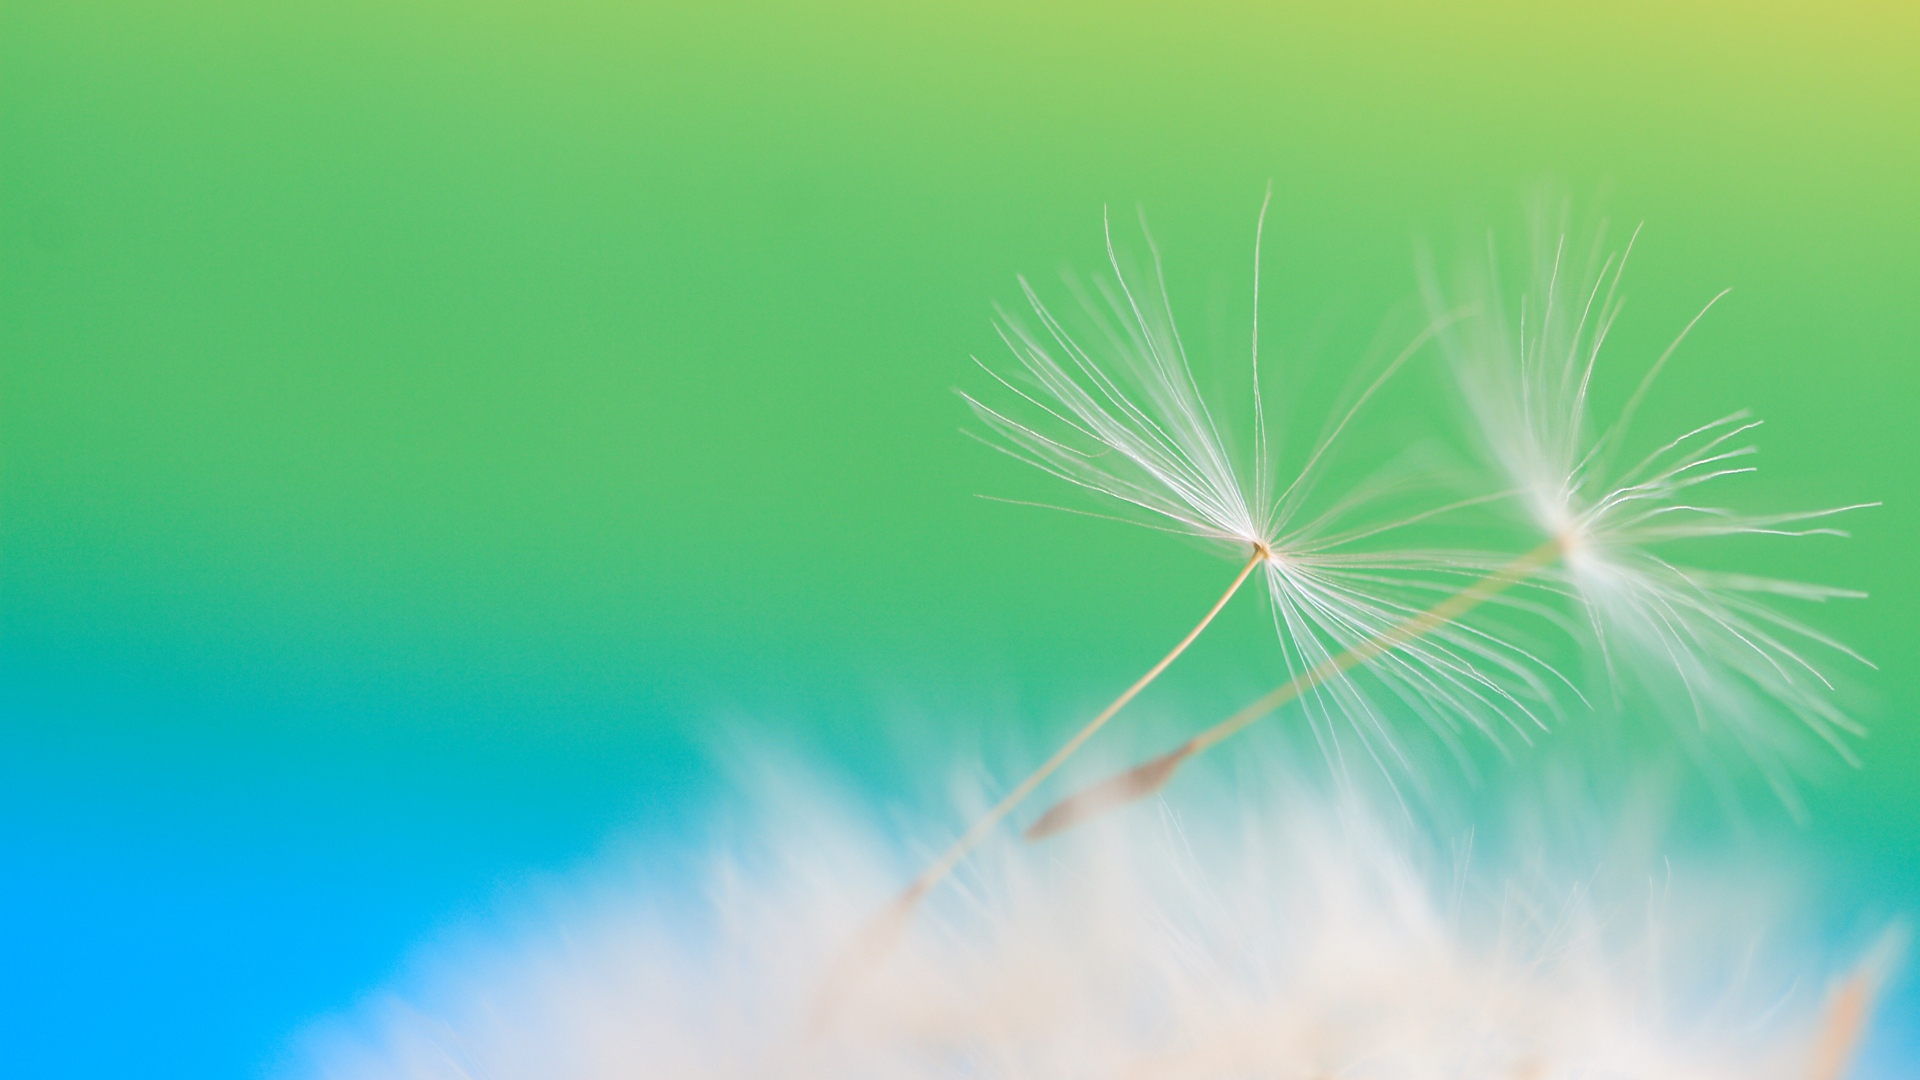 dandelion seeds  backgrounds